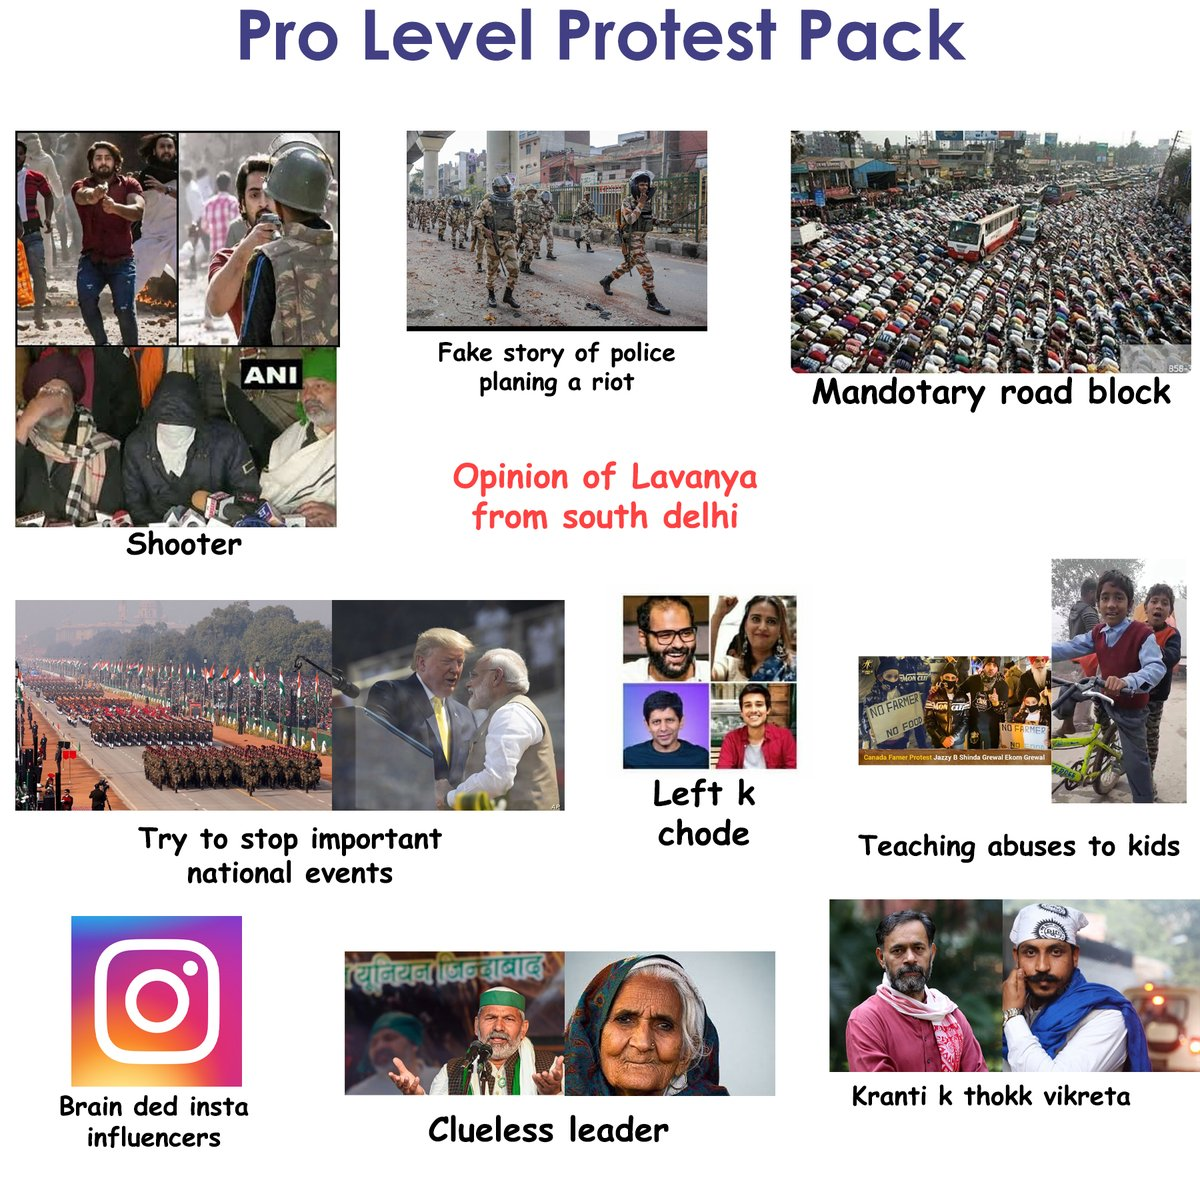 Replying to @thephukdi: updated protest pack